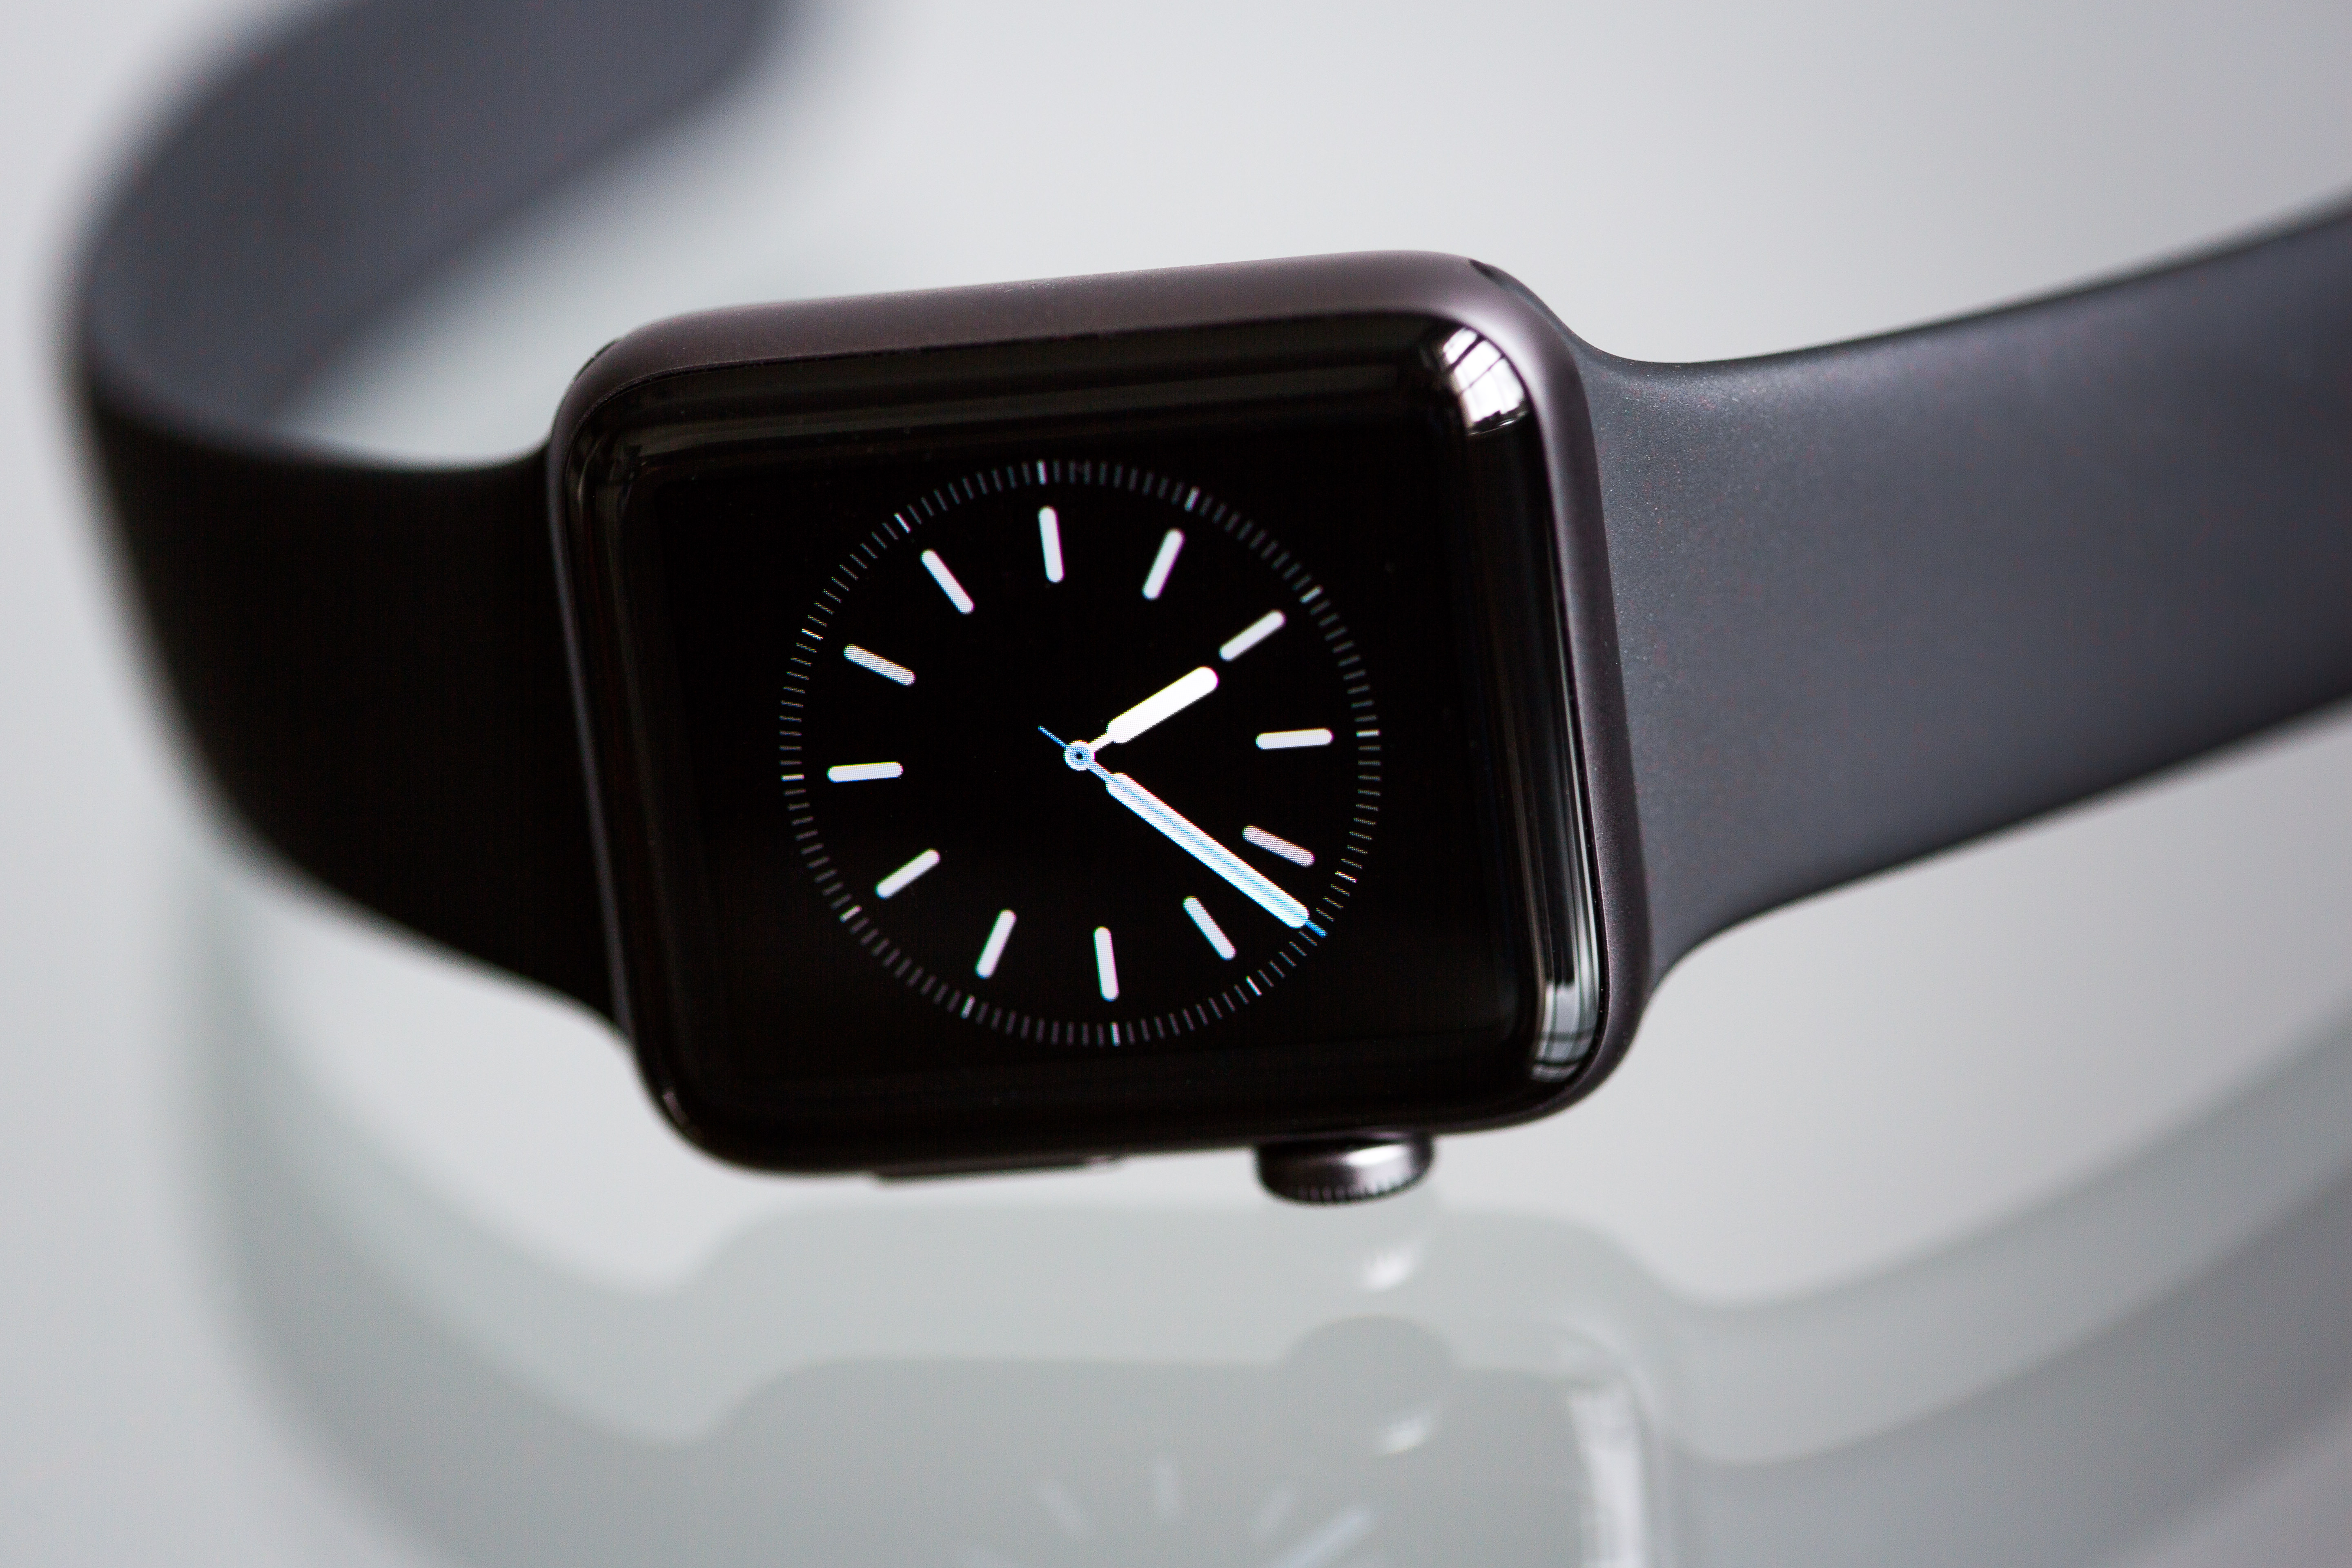 Black Apple Watch With Black Sports Band Displaying 10:06